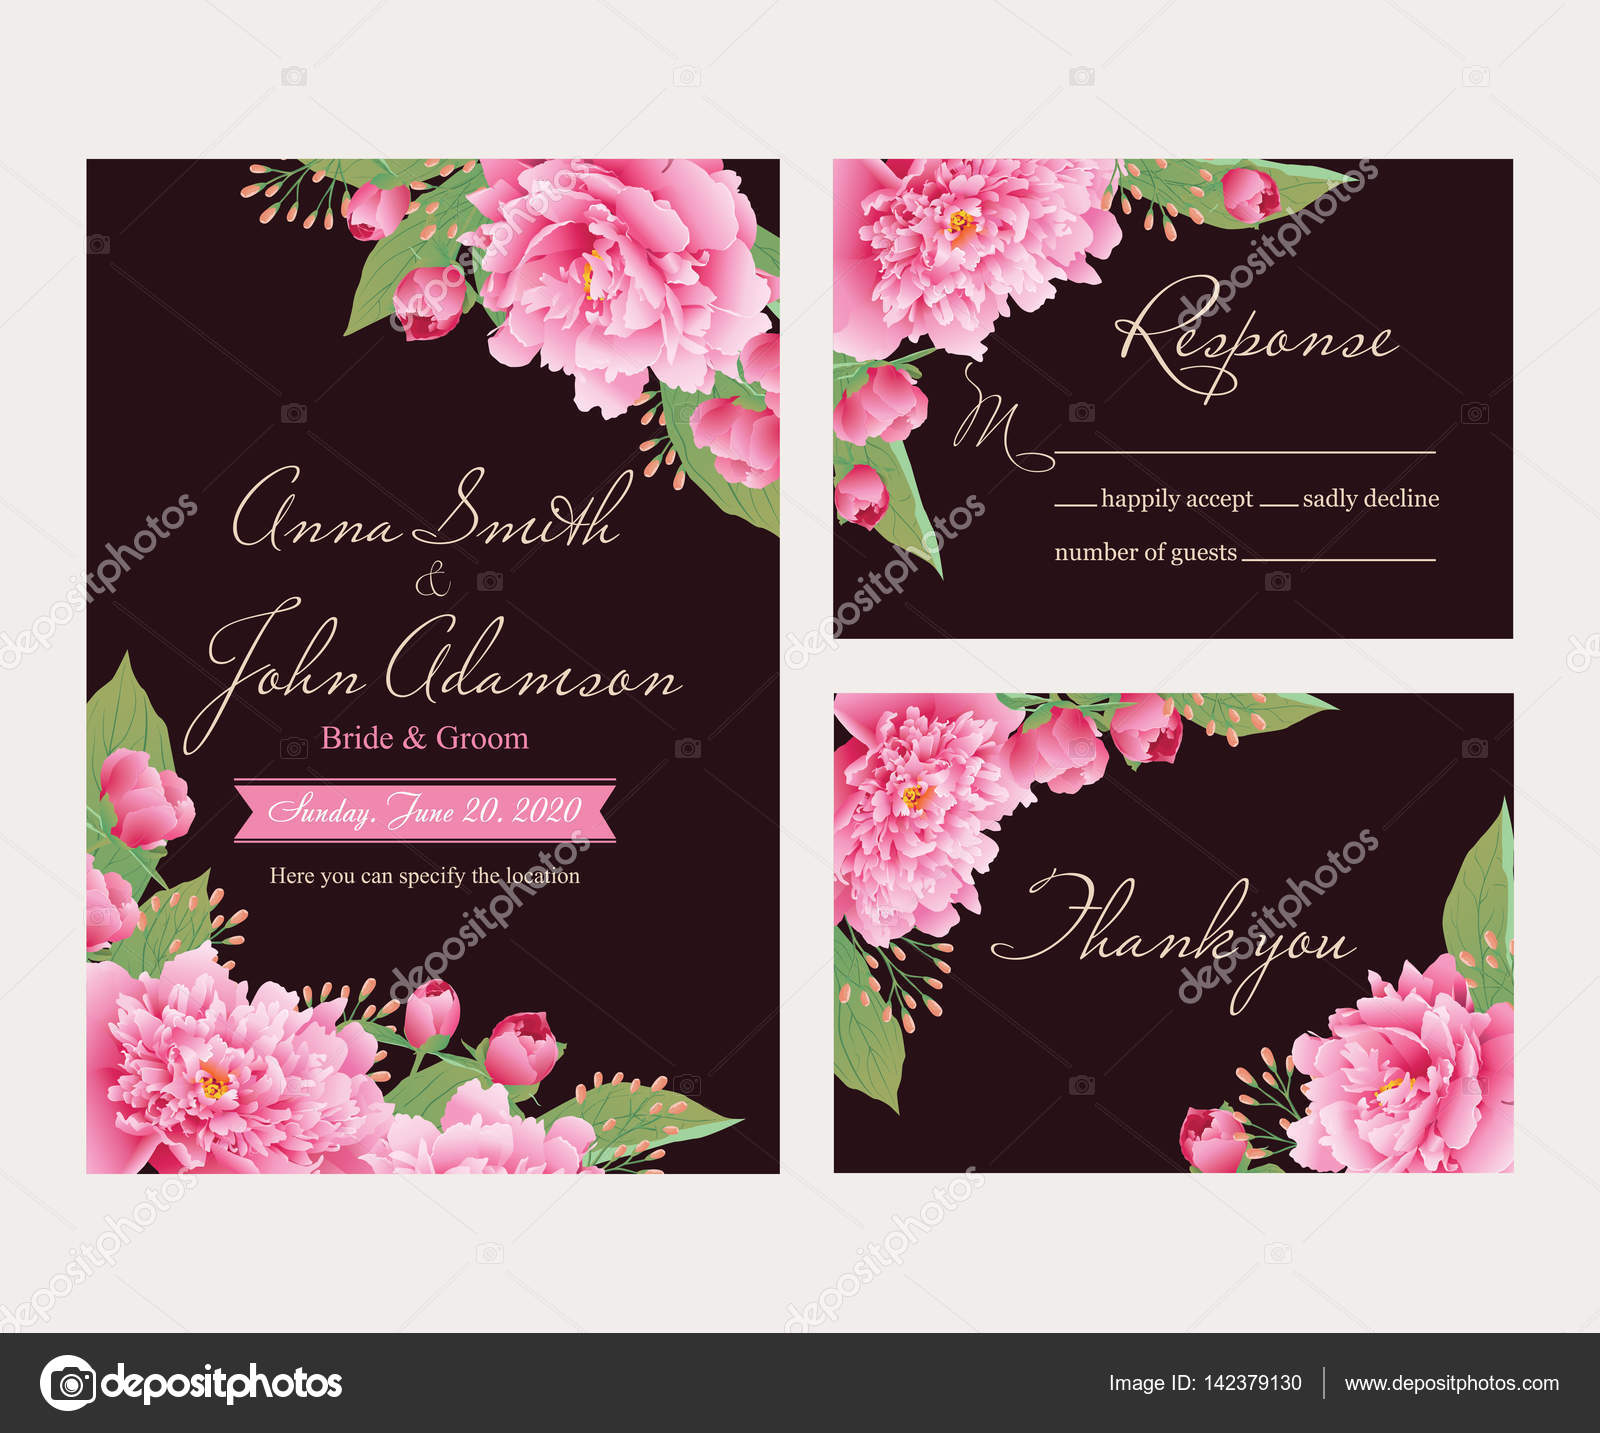 Wedding invitation thank you card save the date cards eps 10 wedding invitation thank you card save the date cardsding collection wedding designinvitation cardromantic floral peonies eps 10 vector by stopboris Image collections